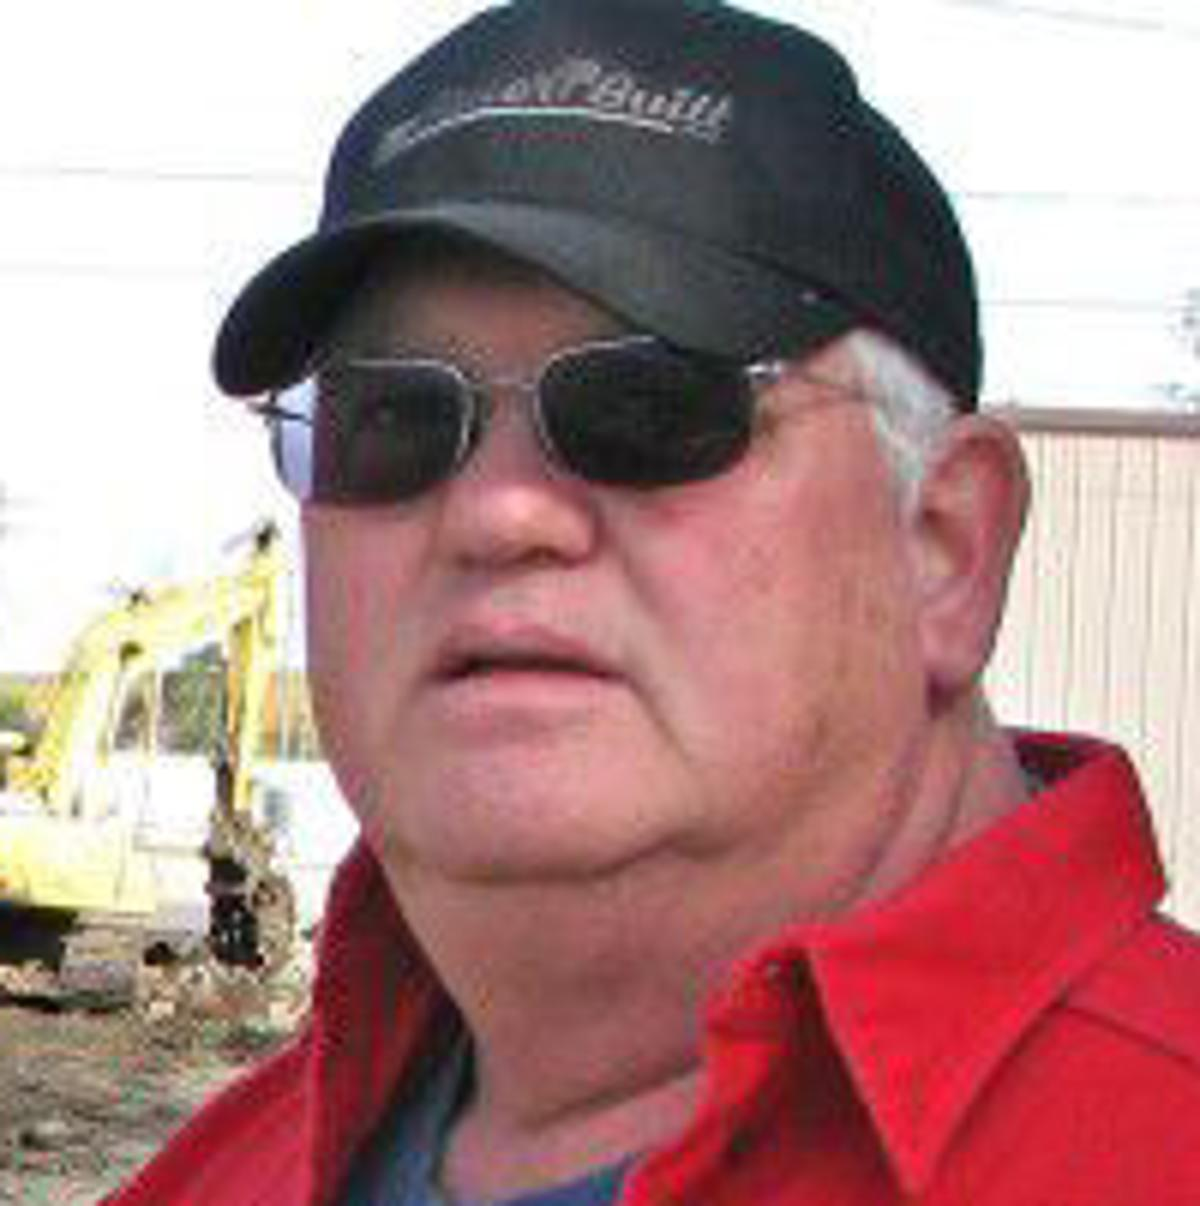 Mayor of Randolph, Nebraska, is accused of sexually assaulting a ...